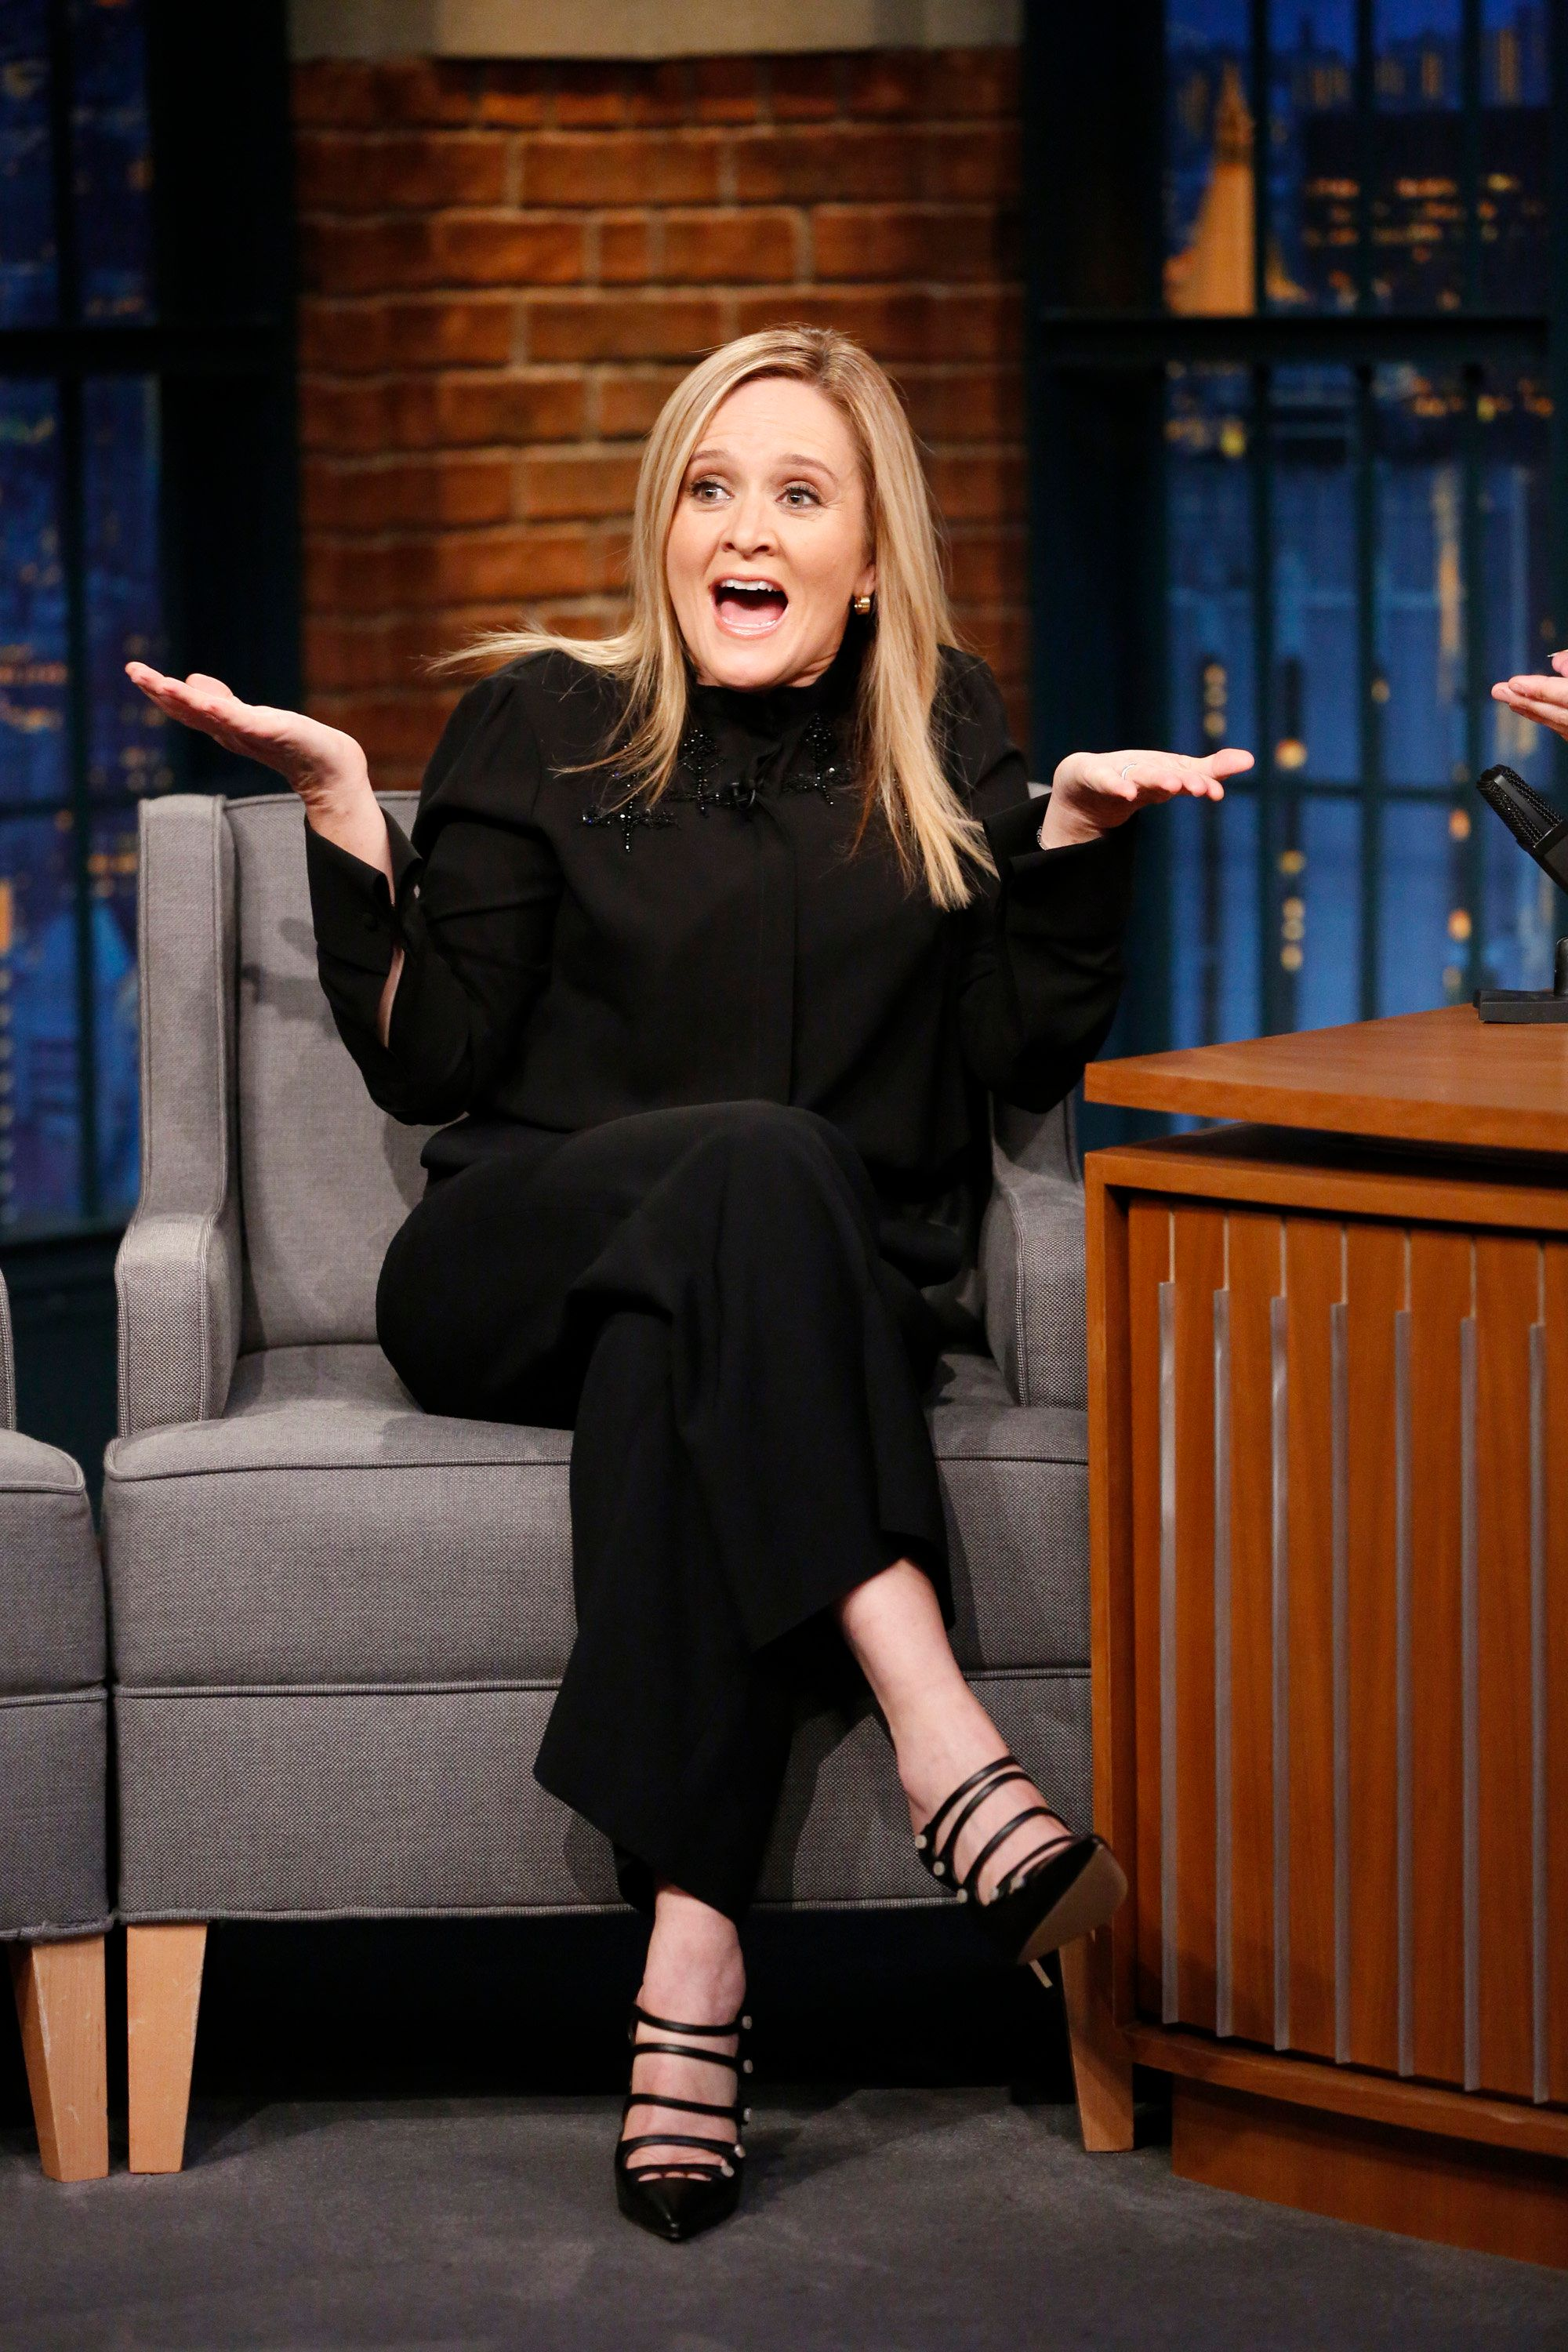 LATE NIGHT WITH SETH MEYERS -- Episode 619 -- Pictured: Comedian Samantha Bee during an interview on December 4, 2017 -- (Photo by: Lloyd Bishop/NBC/NBCU Photo Bank via Getty Images)